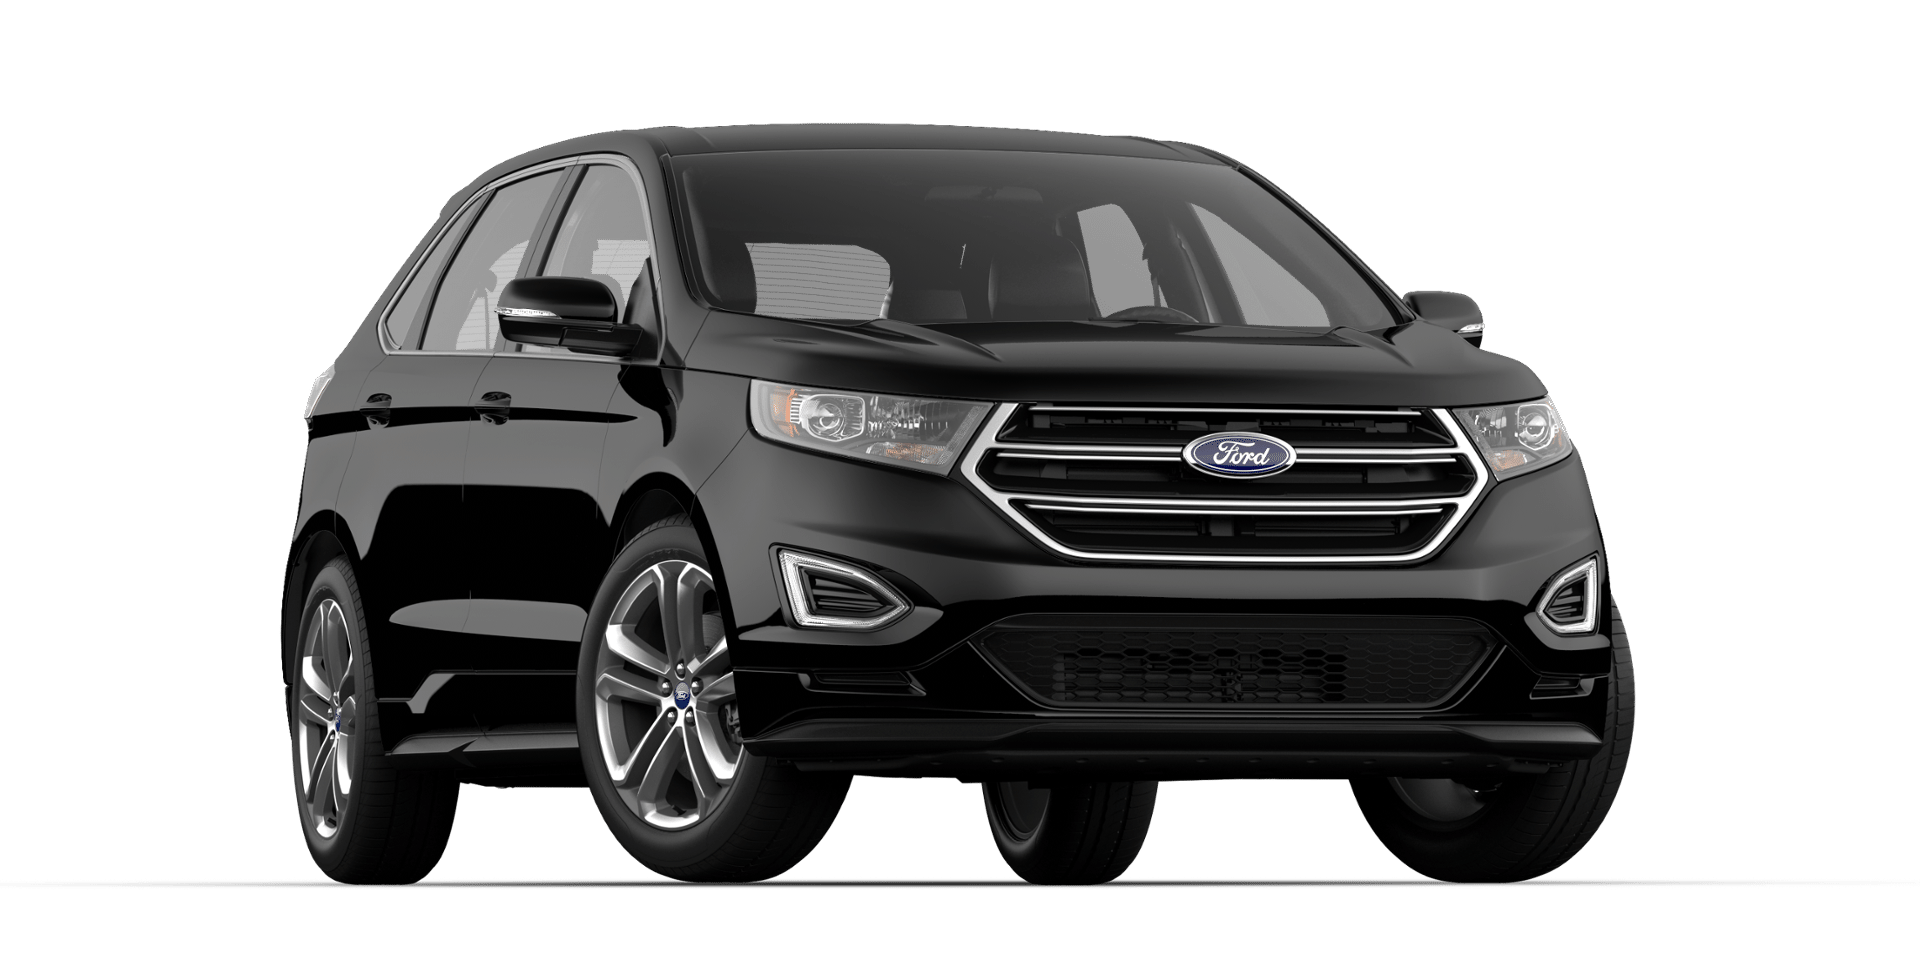 2018 ford edge lease deals at muzi ford near boston ma. Black Bedroom Furniture Sets. Home Design Ideas